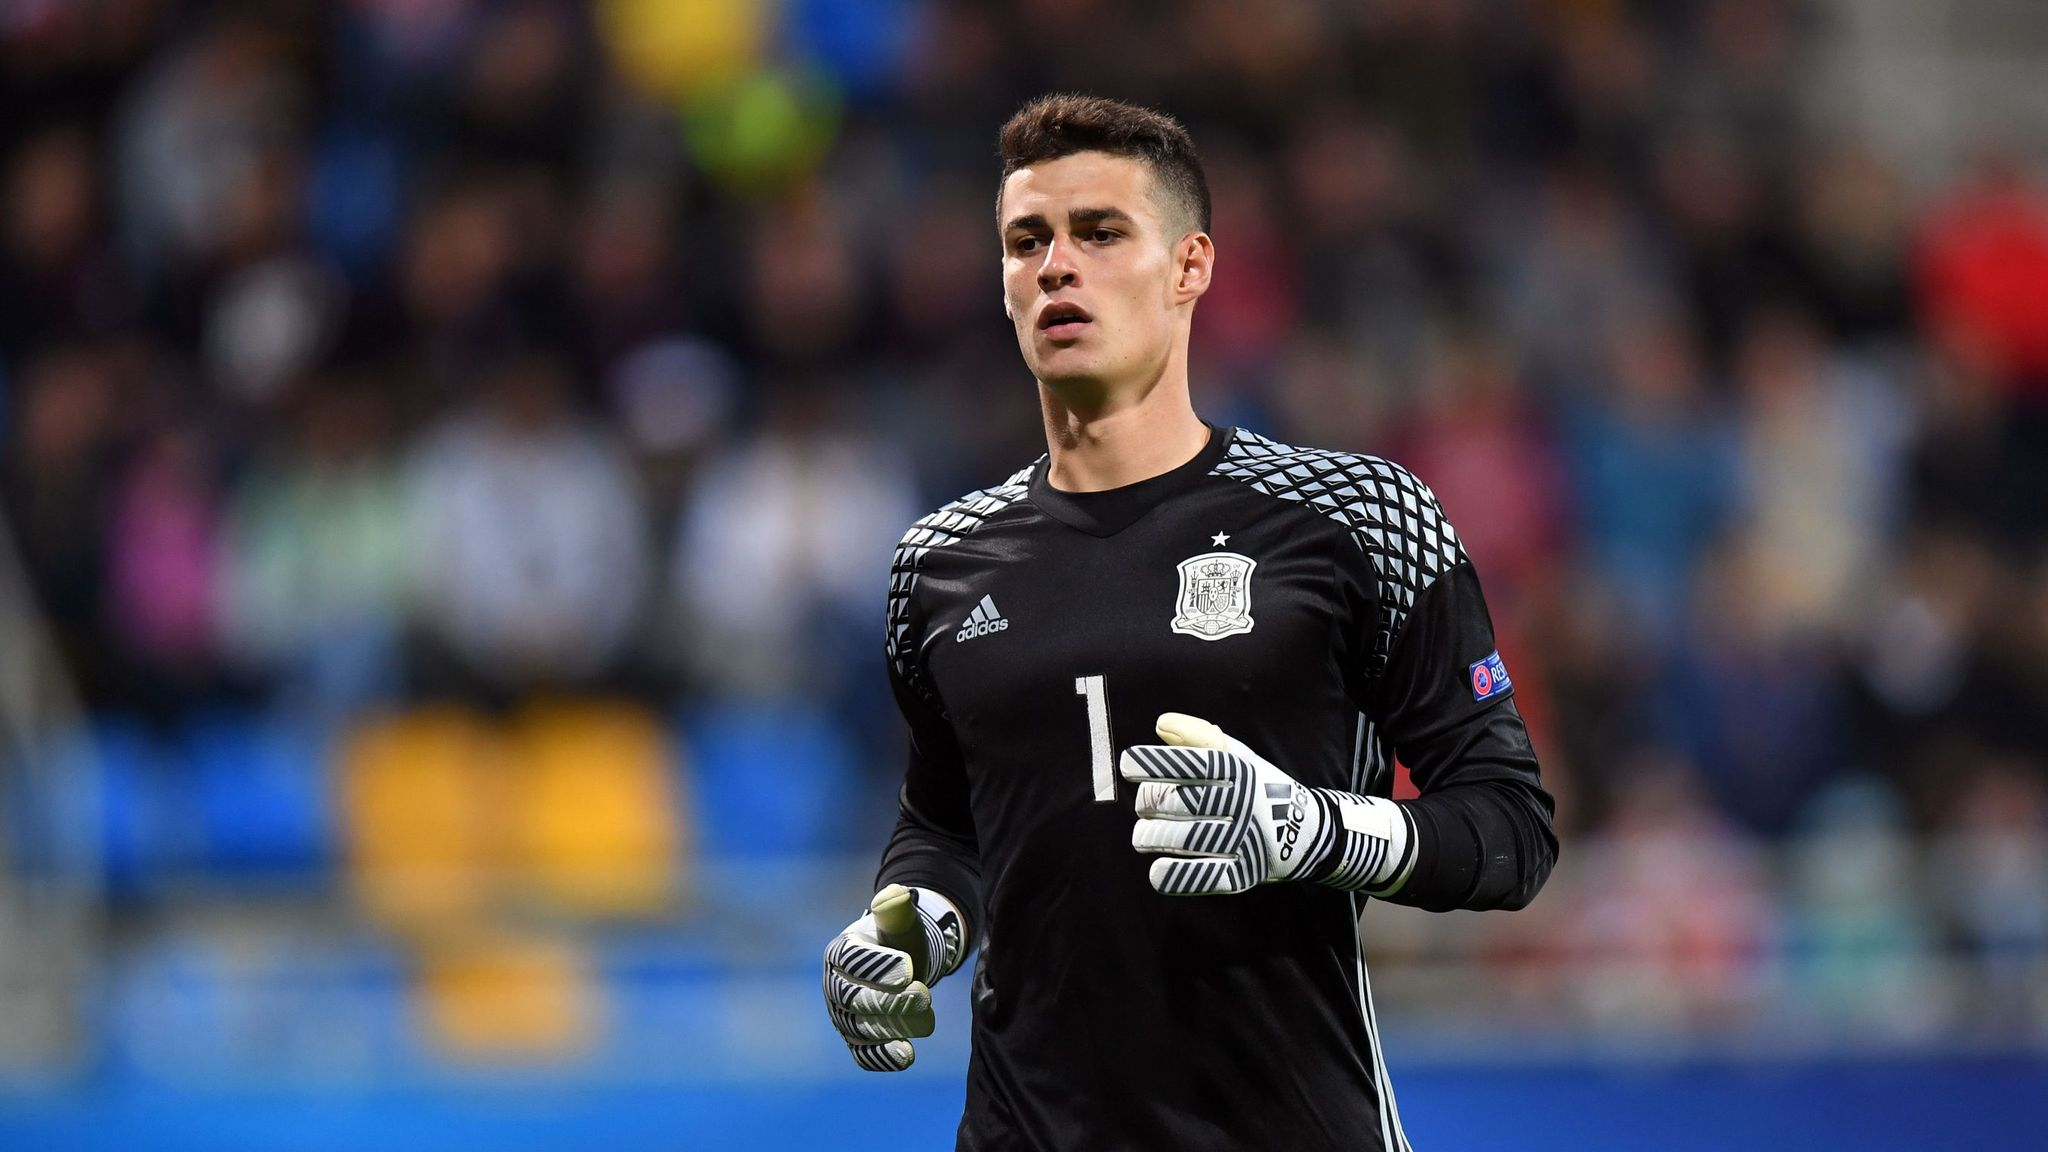 Kepa Arrizabalaga Ends Real Madrid Speculation By Signing Athletic